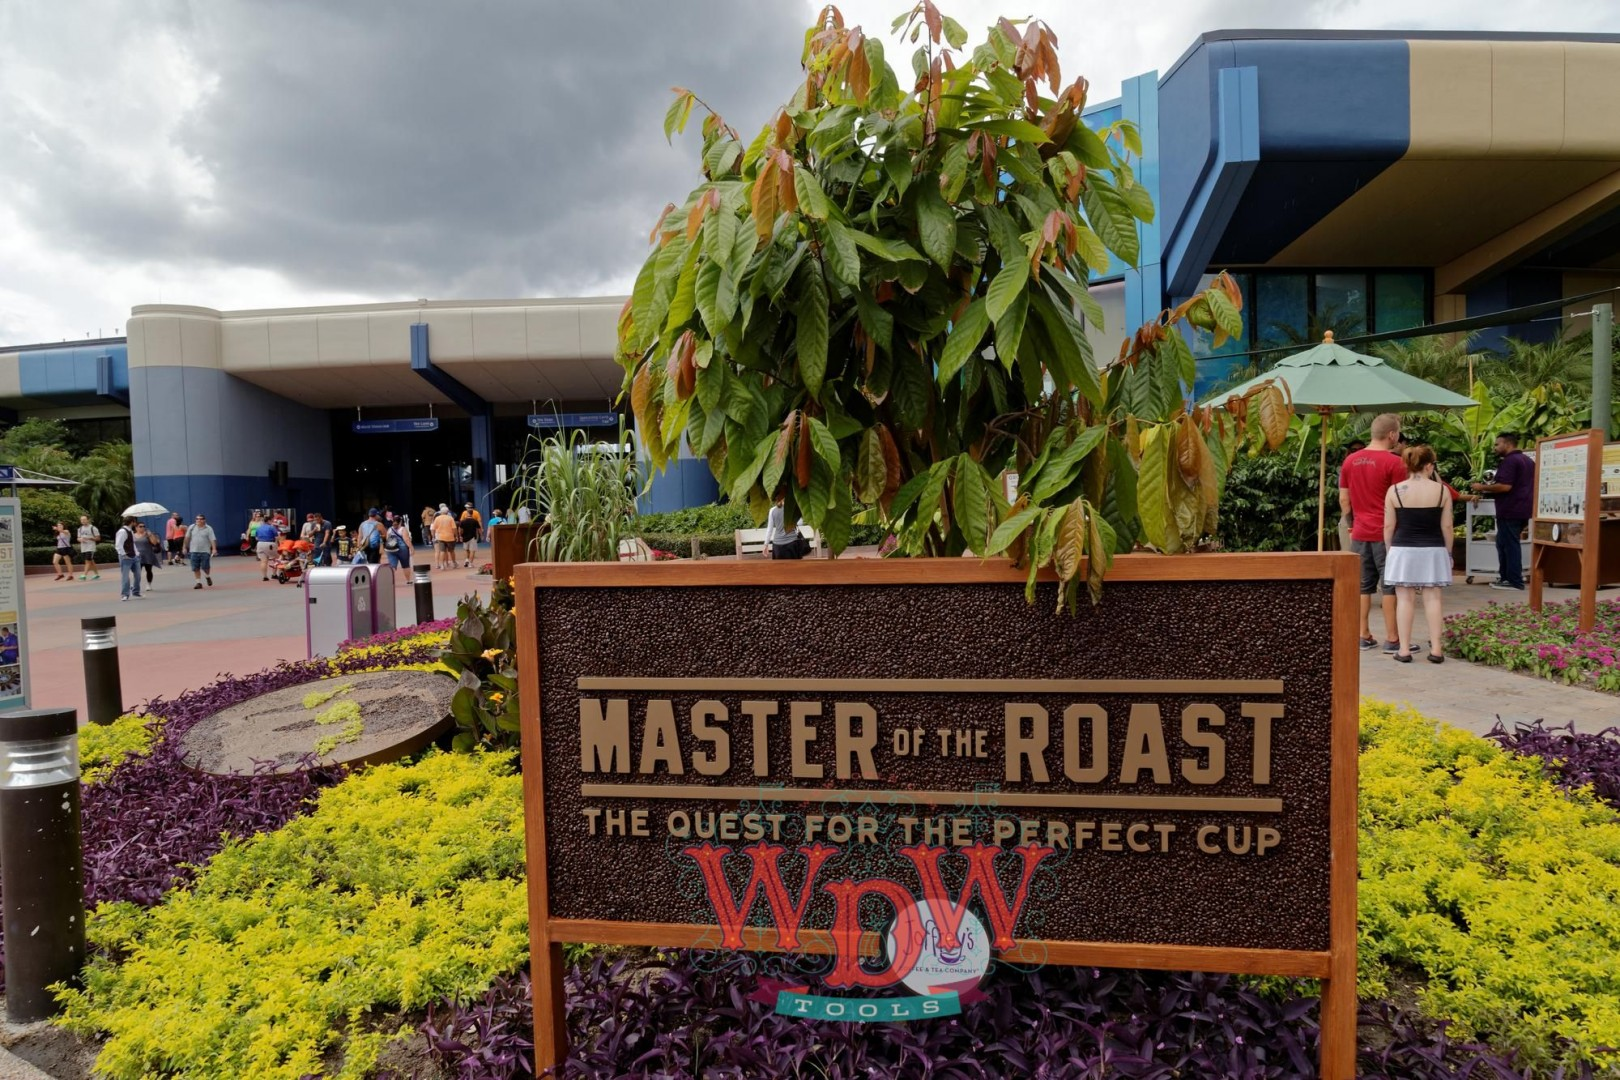 Masters of the Roast: The Quest for the Perfect Cup at Epcot's F&W 2015